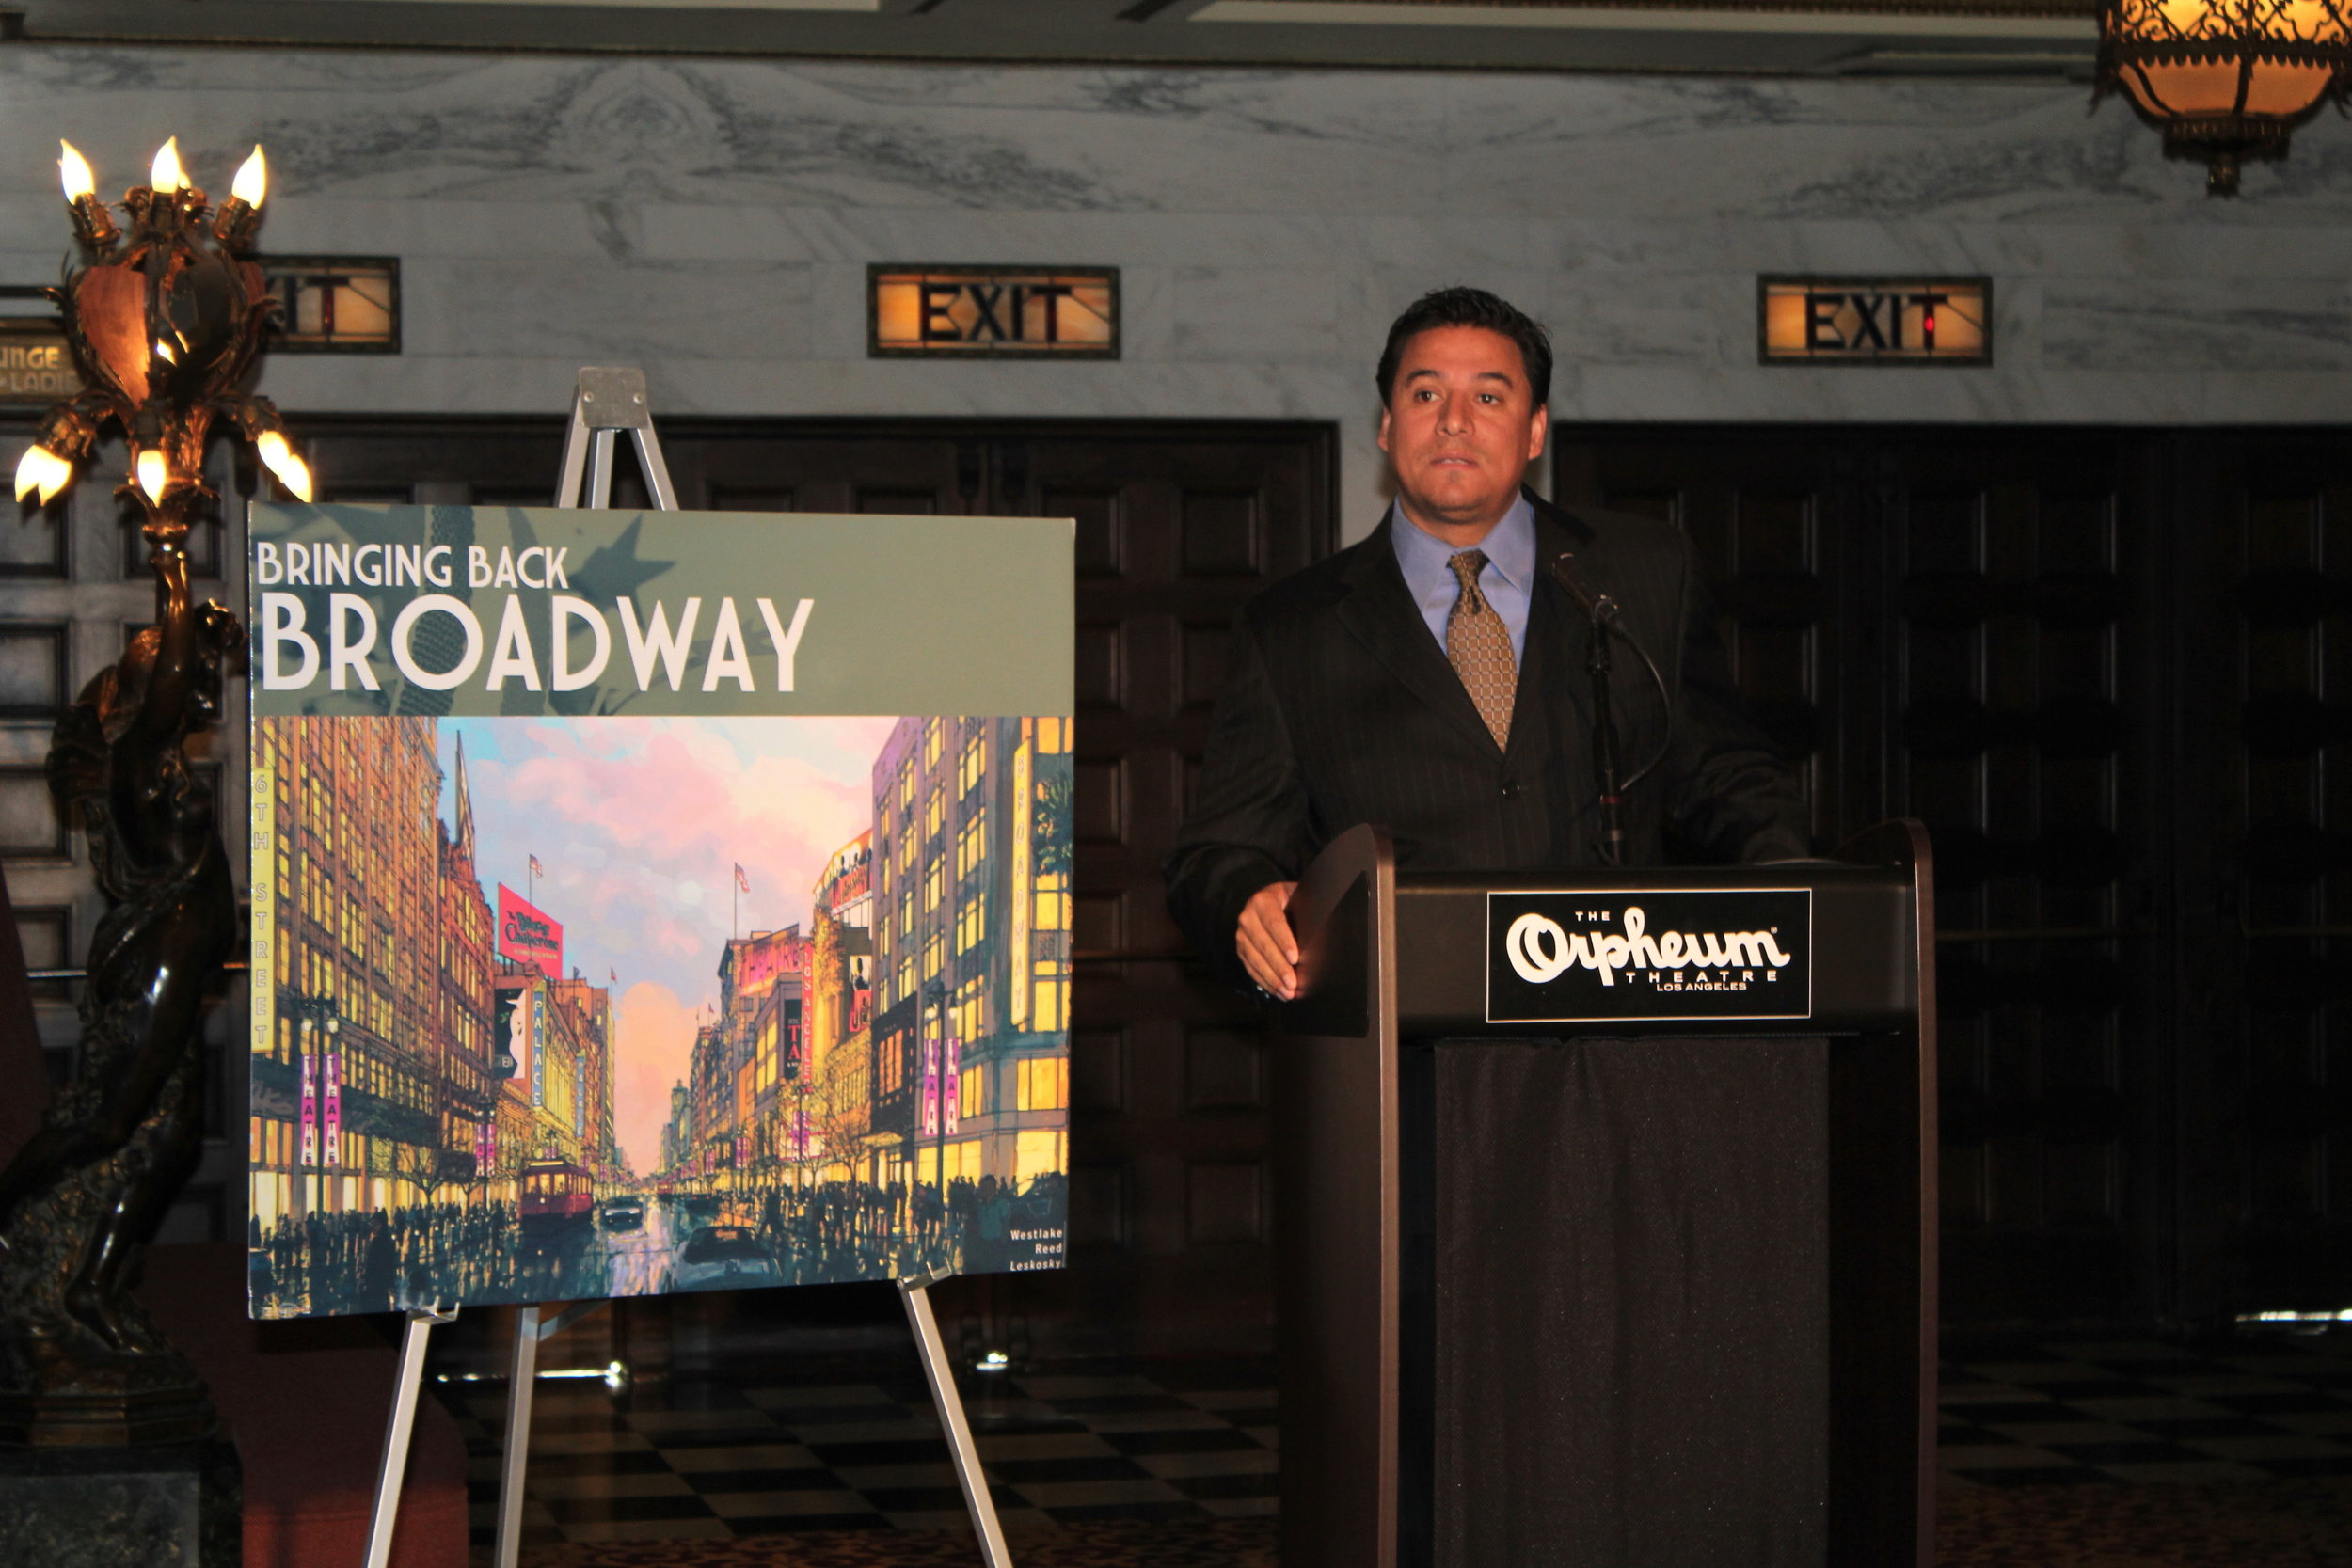 councilmember-jose-huizar-cd-14-los-angeles-downtown-bringing-back-broadway-orpheum-theatre_5389850216_o.jpg